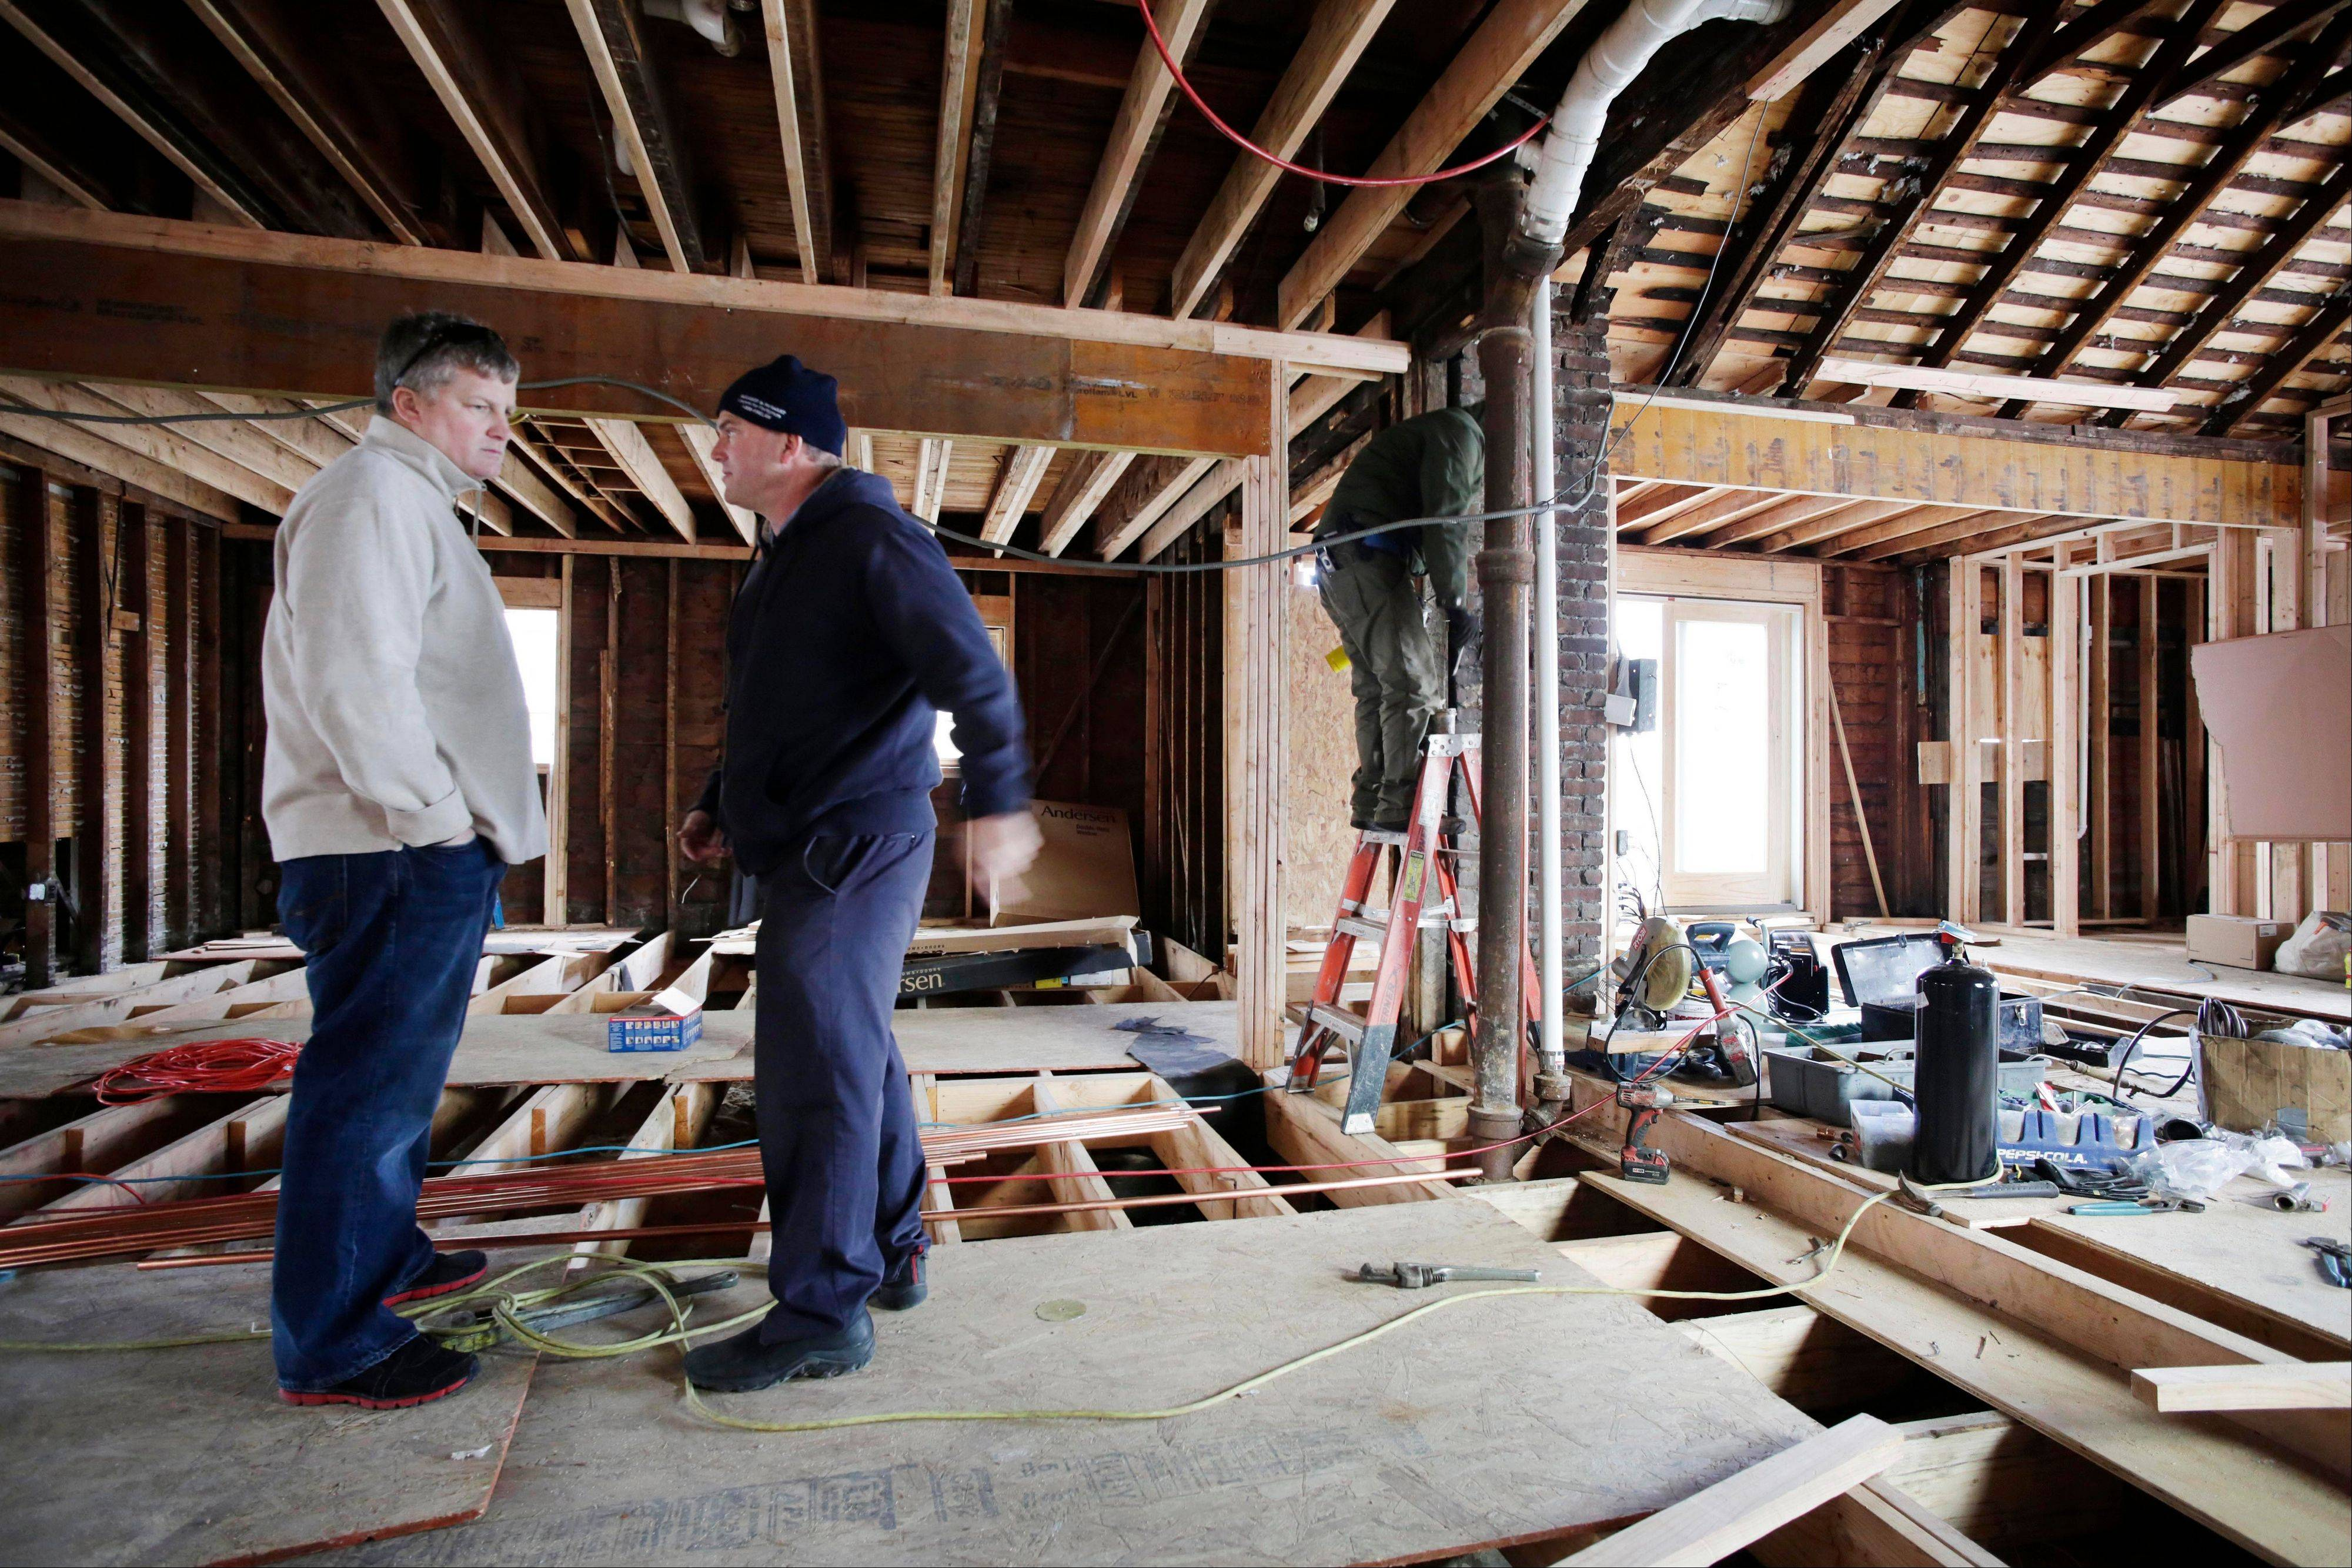 Joseph O'Grady, left, with Rockaway Reach, talks with Kevin Murphy as they discuss the renovation of Murphy's home in the Belle Harbor neighborhood of New York. Murphy's house was heavily damaged by flooding sea water during Superstorm Sandy on Oct. 29, 2012.